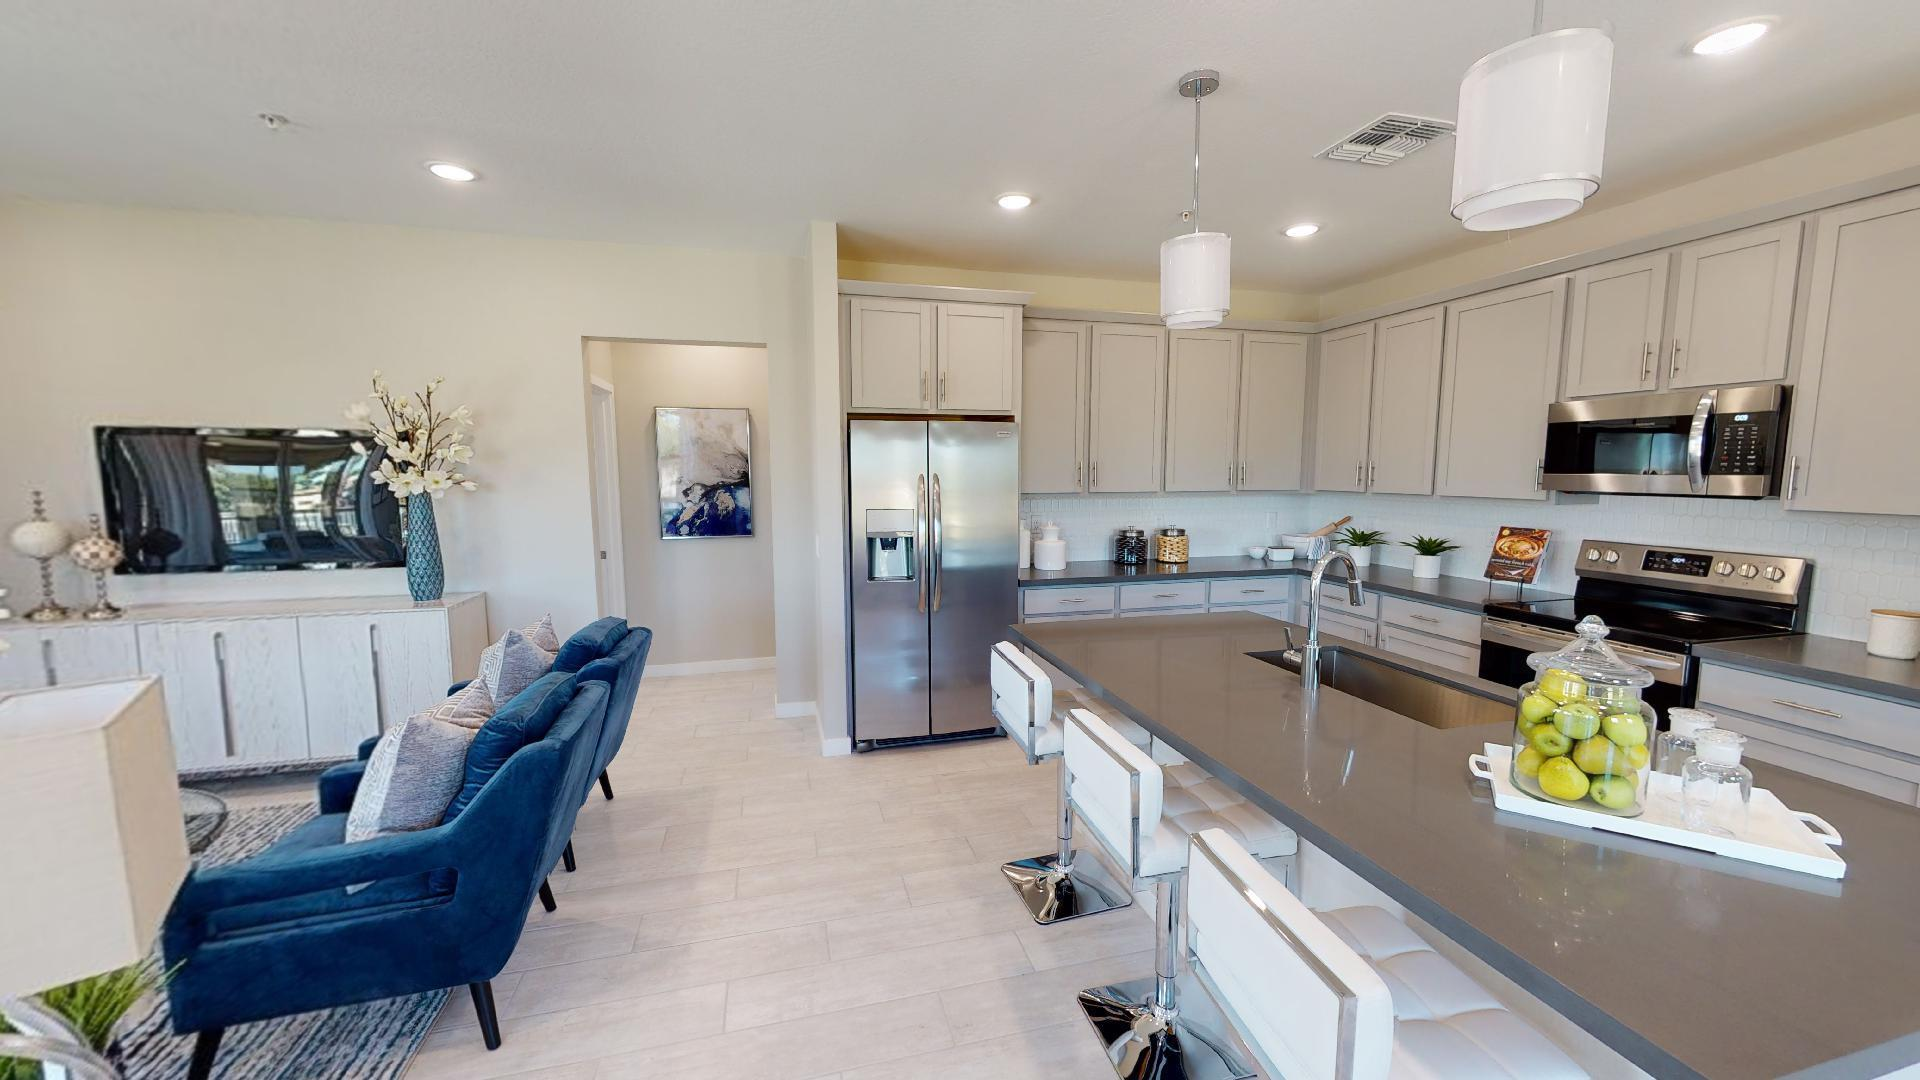 Kitchen featured in the Villa Residence 4 By Ironwood-Waterfall LLC in Phoenix-Mesa, AZ